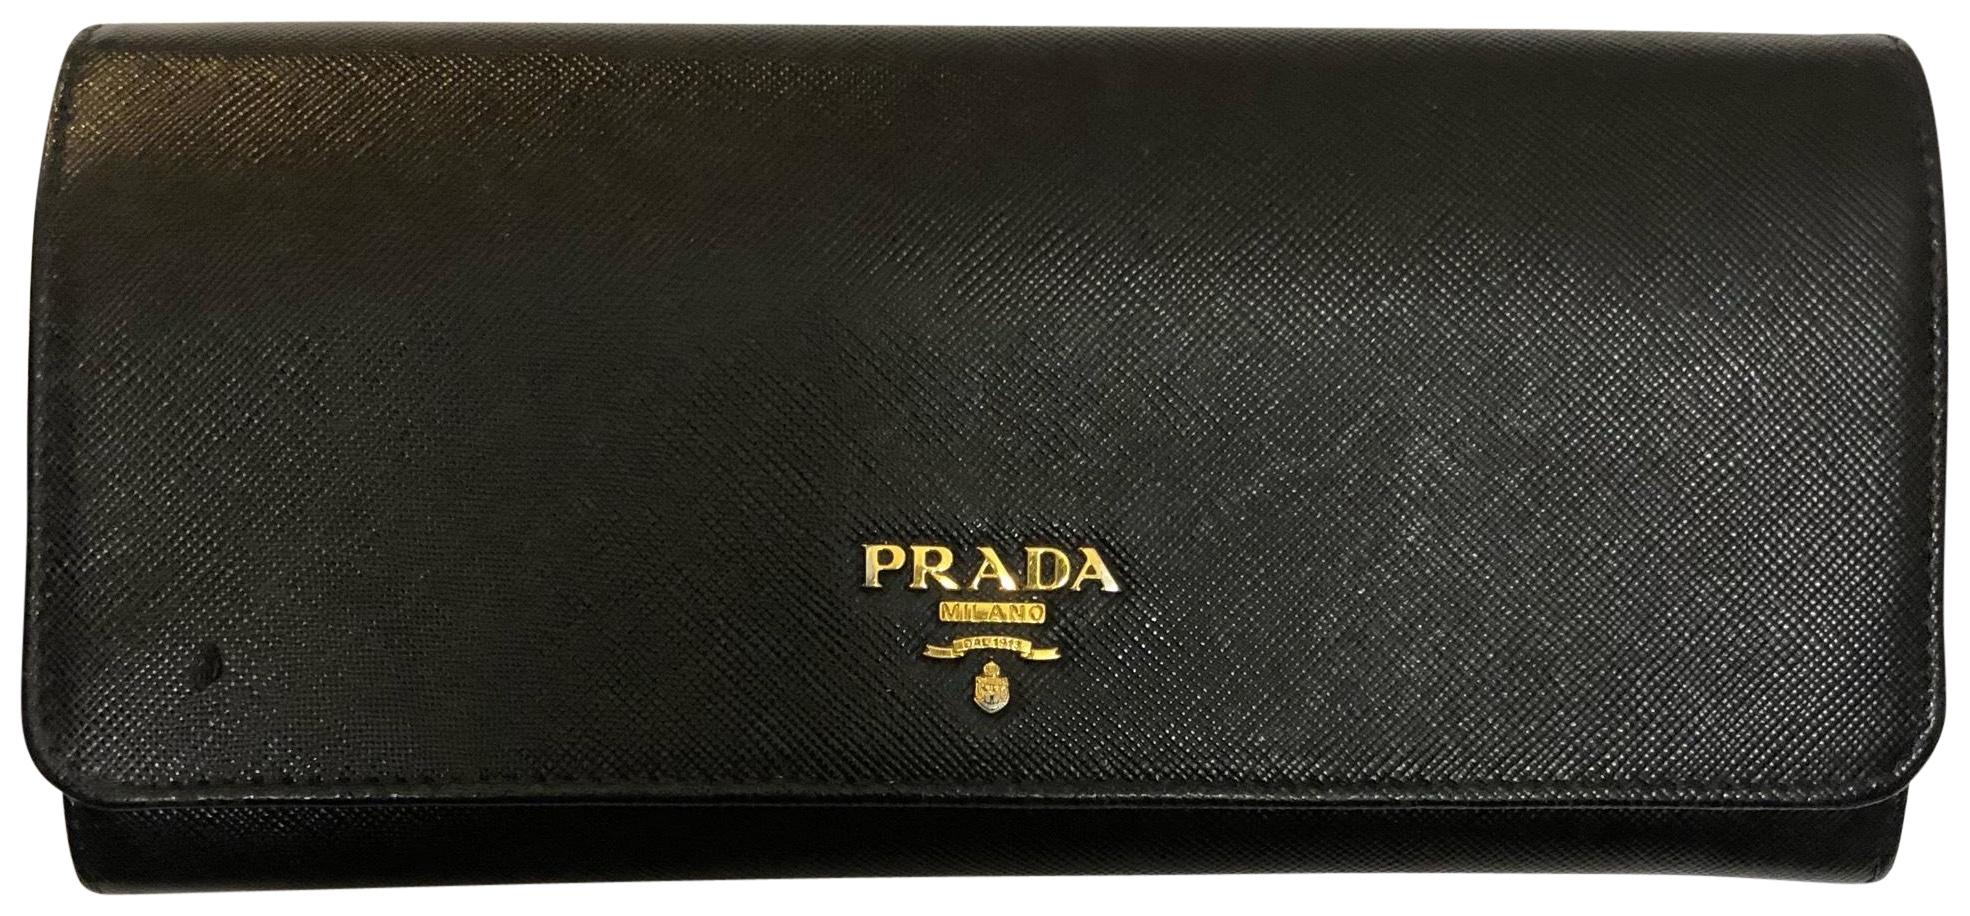 b2d75316d75254 ... discount prada clutches on sale up to 70 off at tradesy 11a4b f7a10